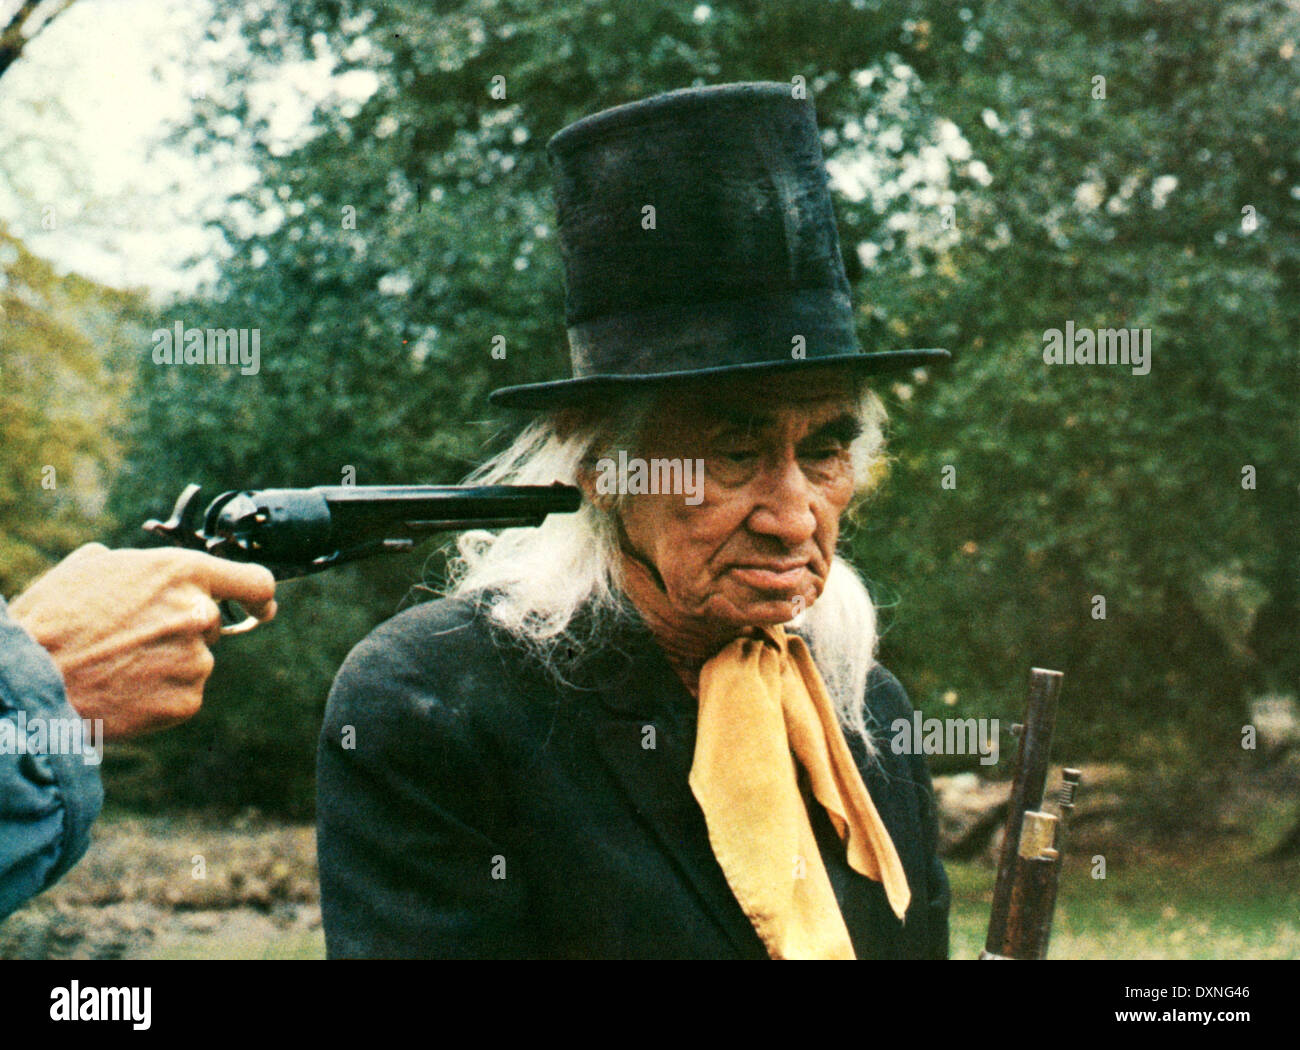 Outlaw Josey Wales Stock Photos & Outlaw Josey Wales Stock Images